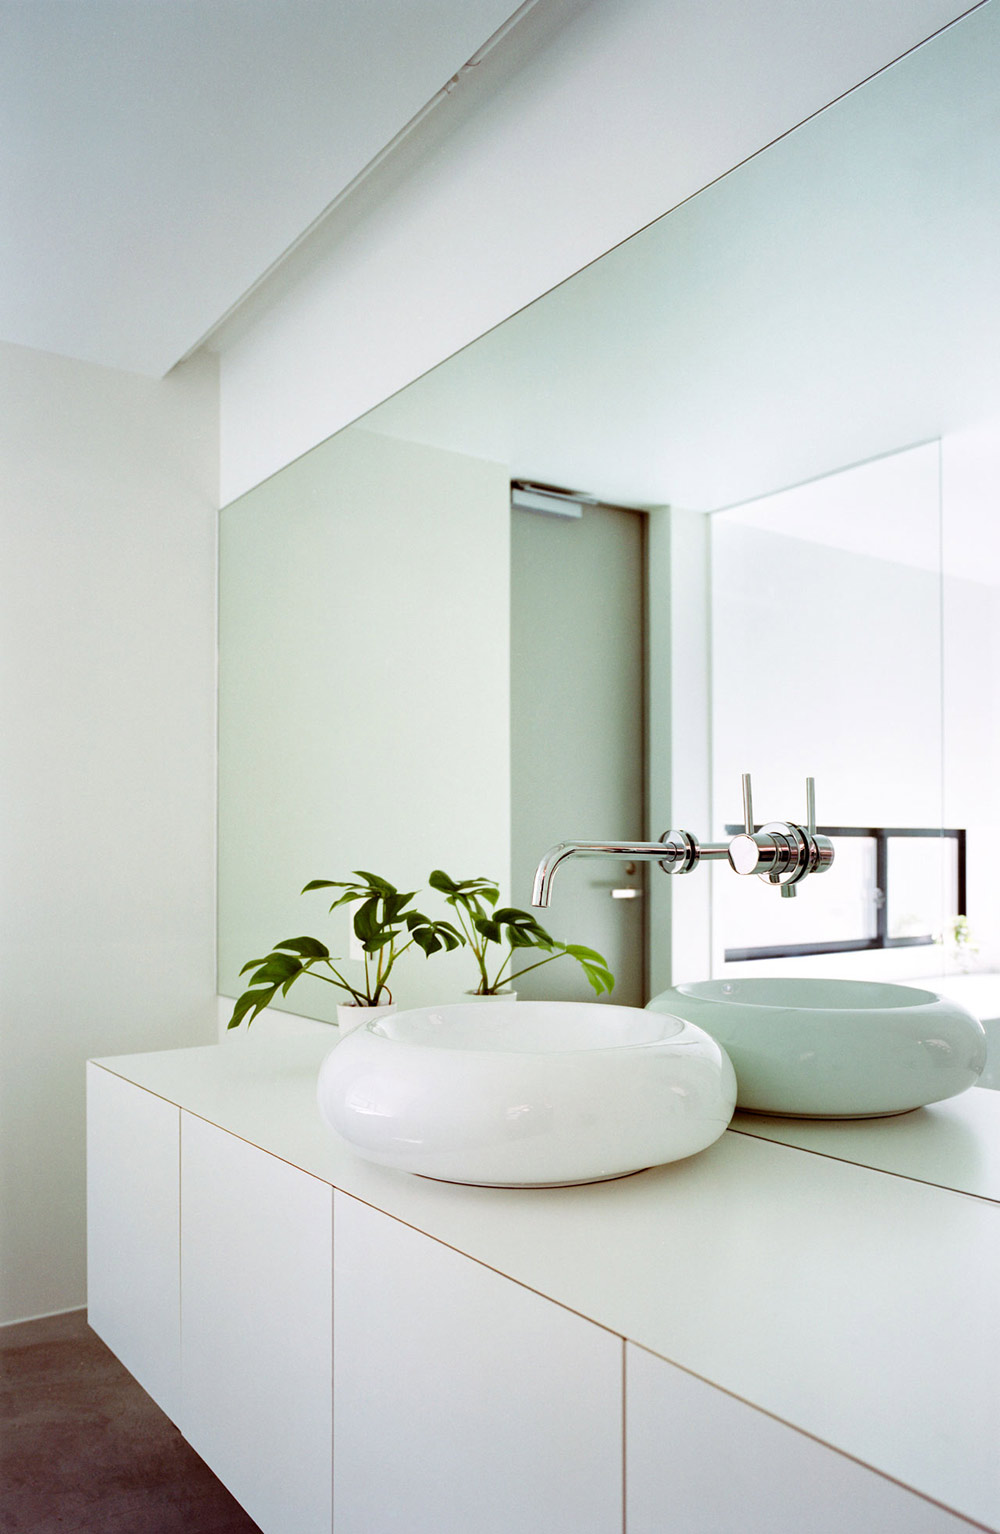 Bathroom, Sink, Outotunoie Fujieda, Japan by mA-style Architects